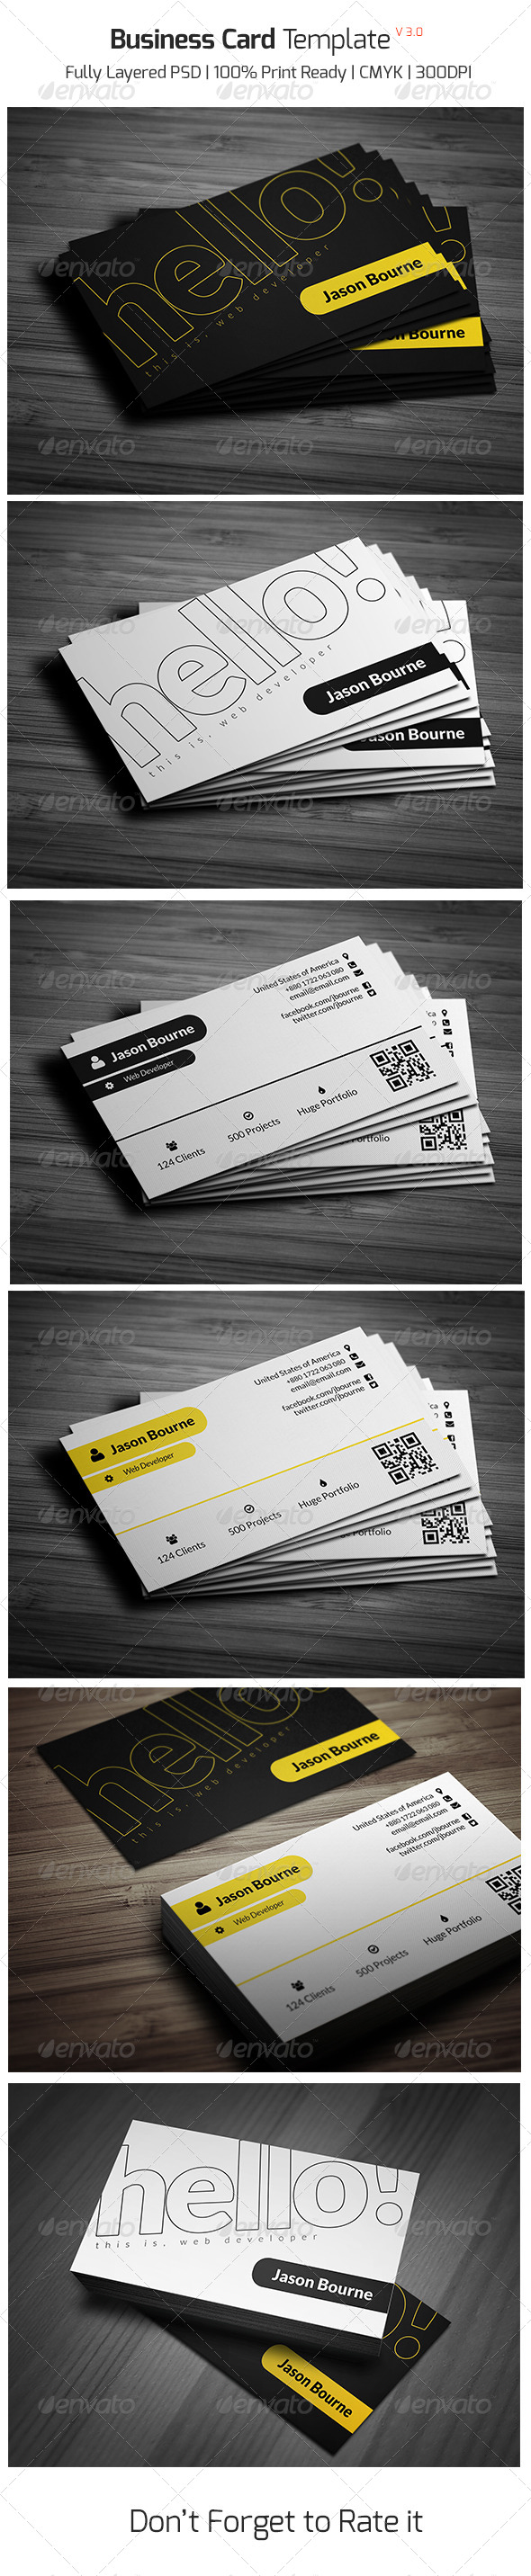 Business Card Template v - 3.0 - Business Cards Print Templates